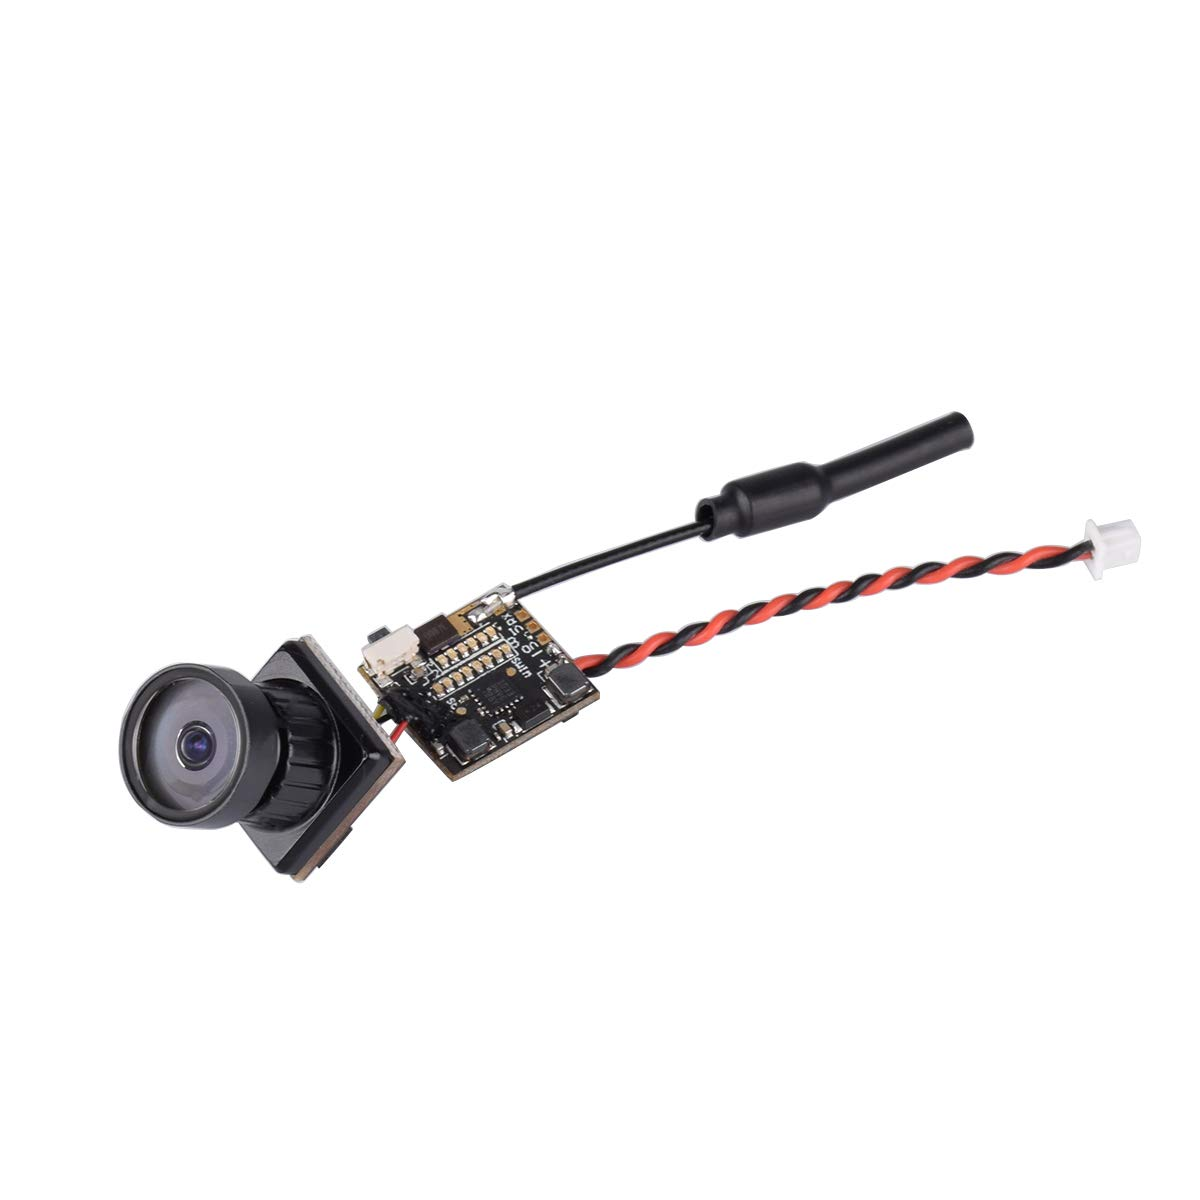 BETAFPV 1200TVL FPV AIO Camera with OSD 25mW 48CH FPV Transmitter VTX 1/3'' CMOS Sensor Support Smart Audio for Tiny Whoop Racing Drone